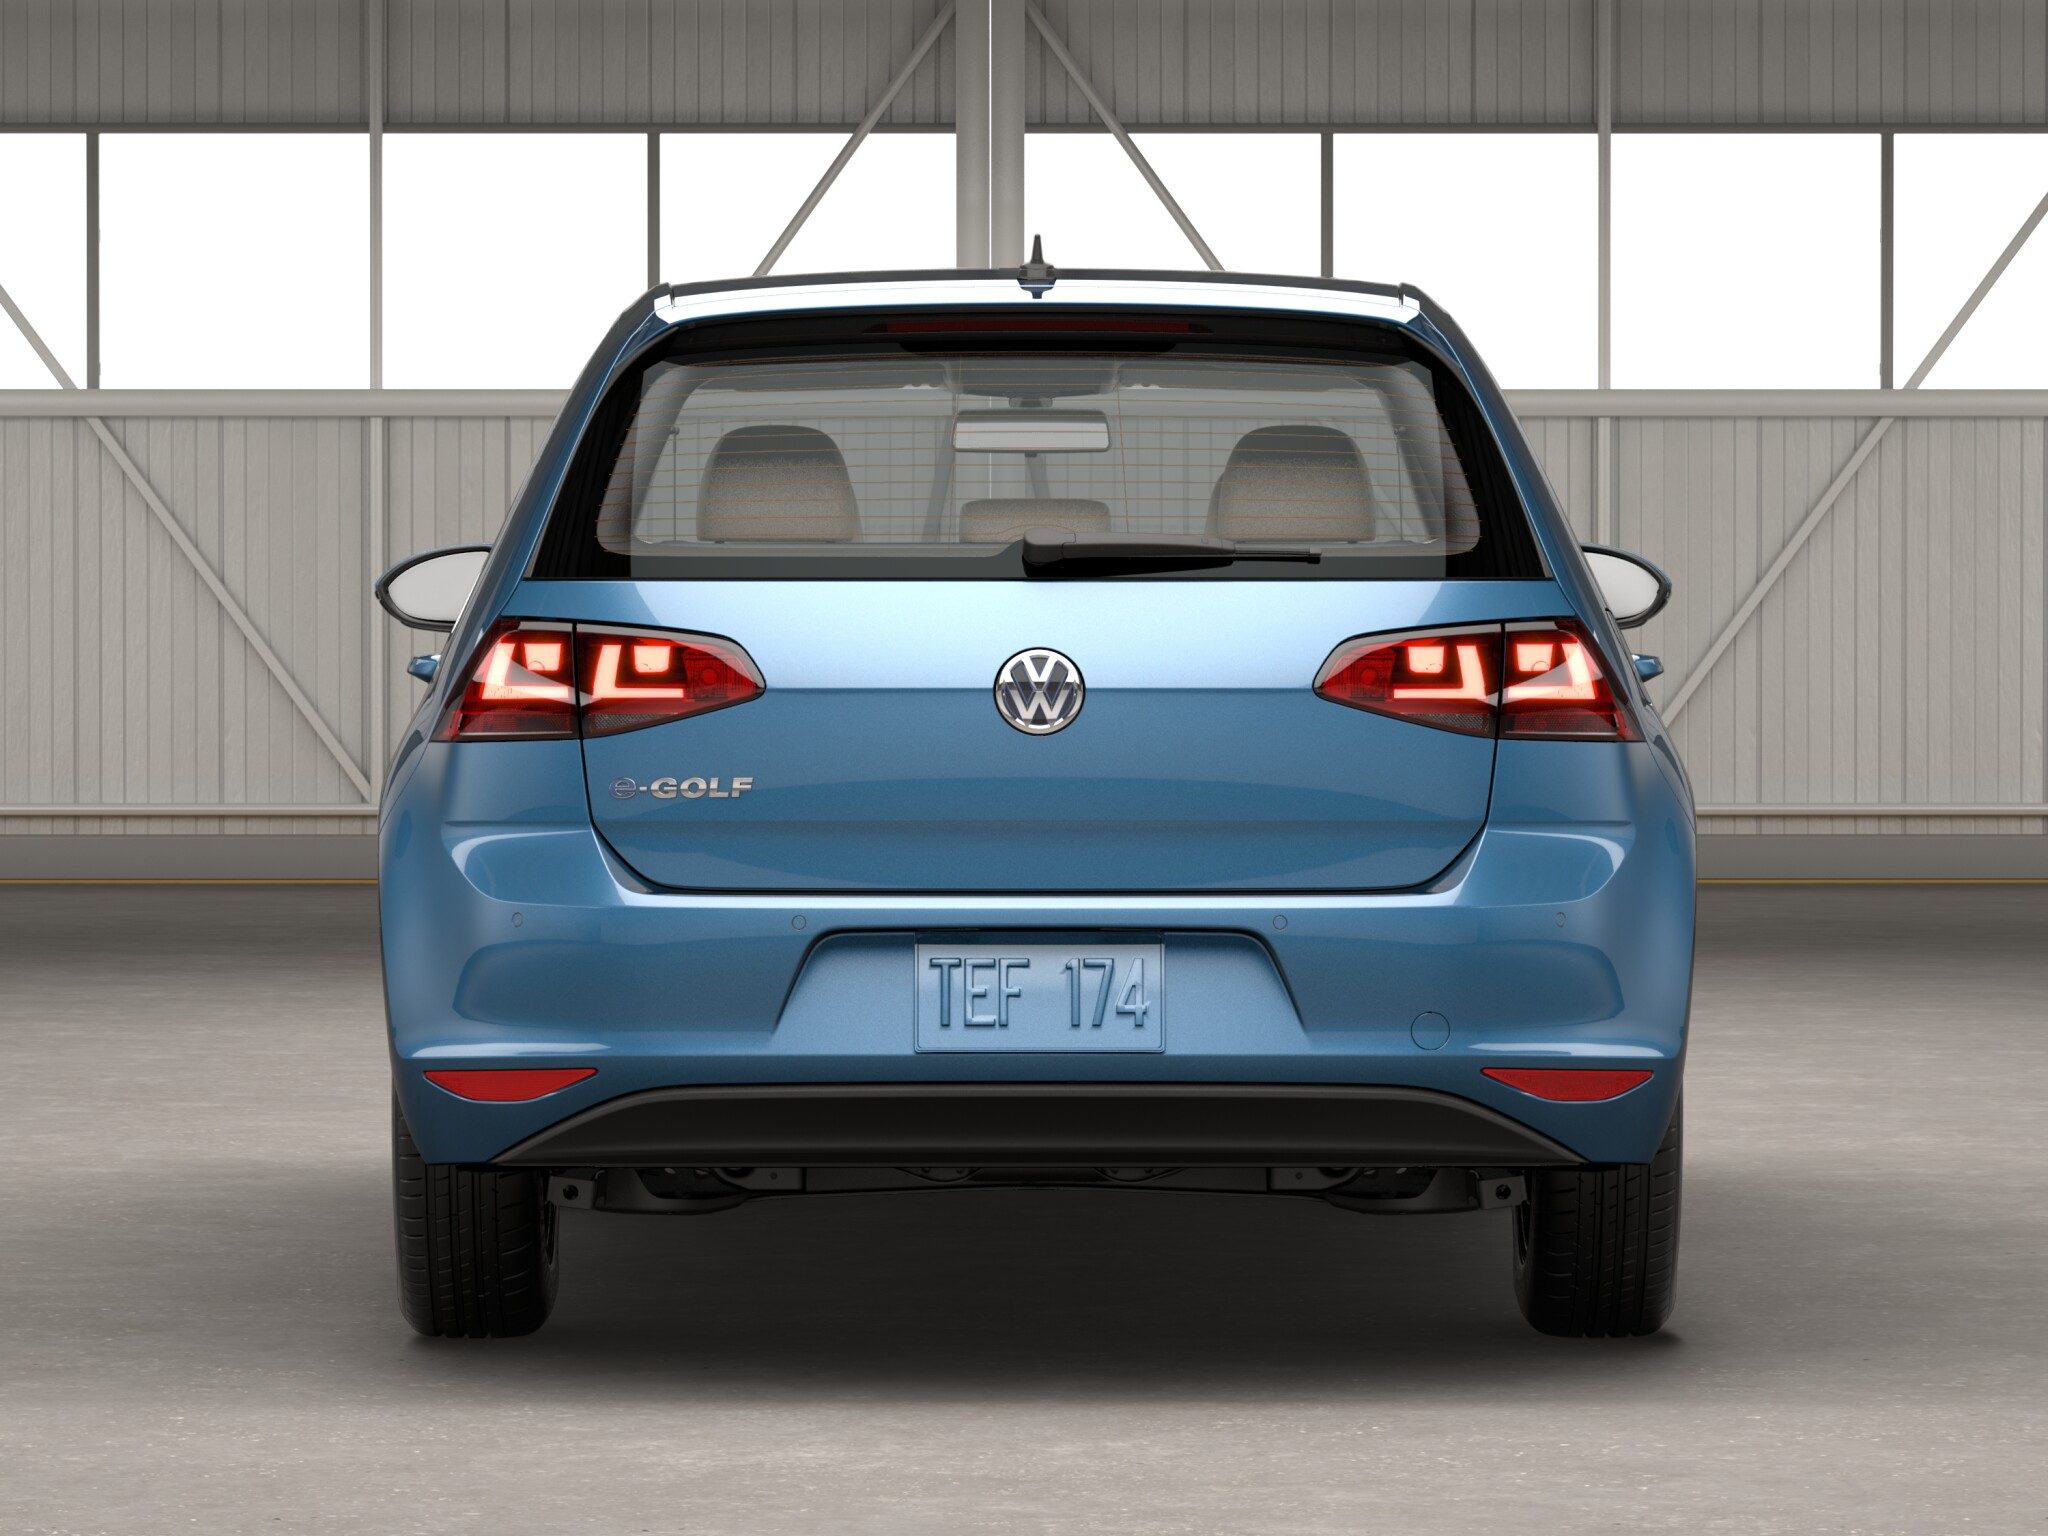 2016 Volkswagen E Golf Rear End View (View 5 of 11)